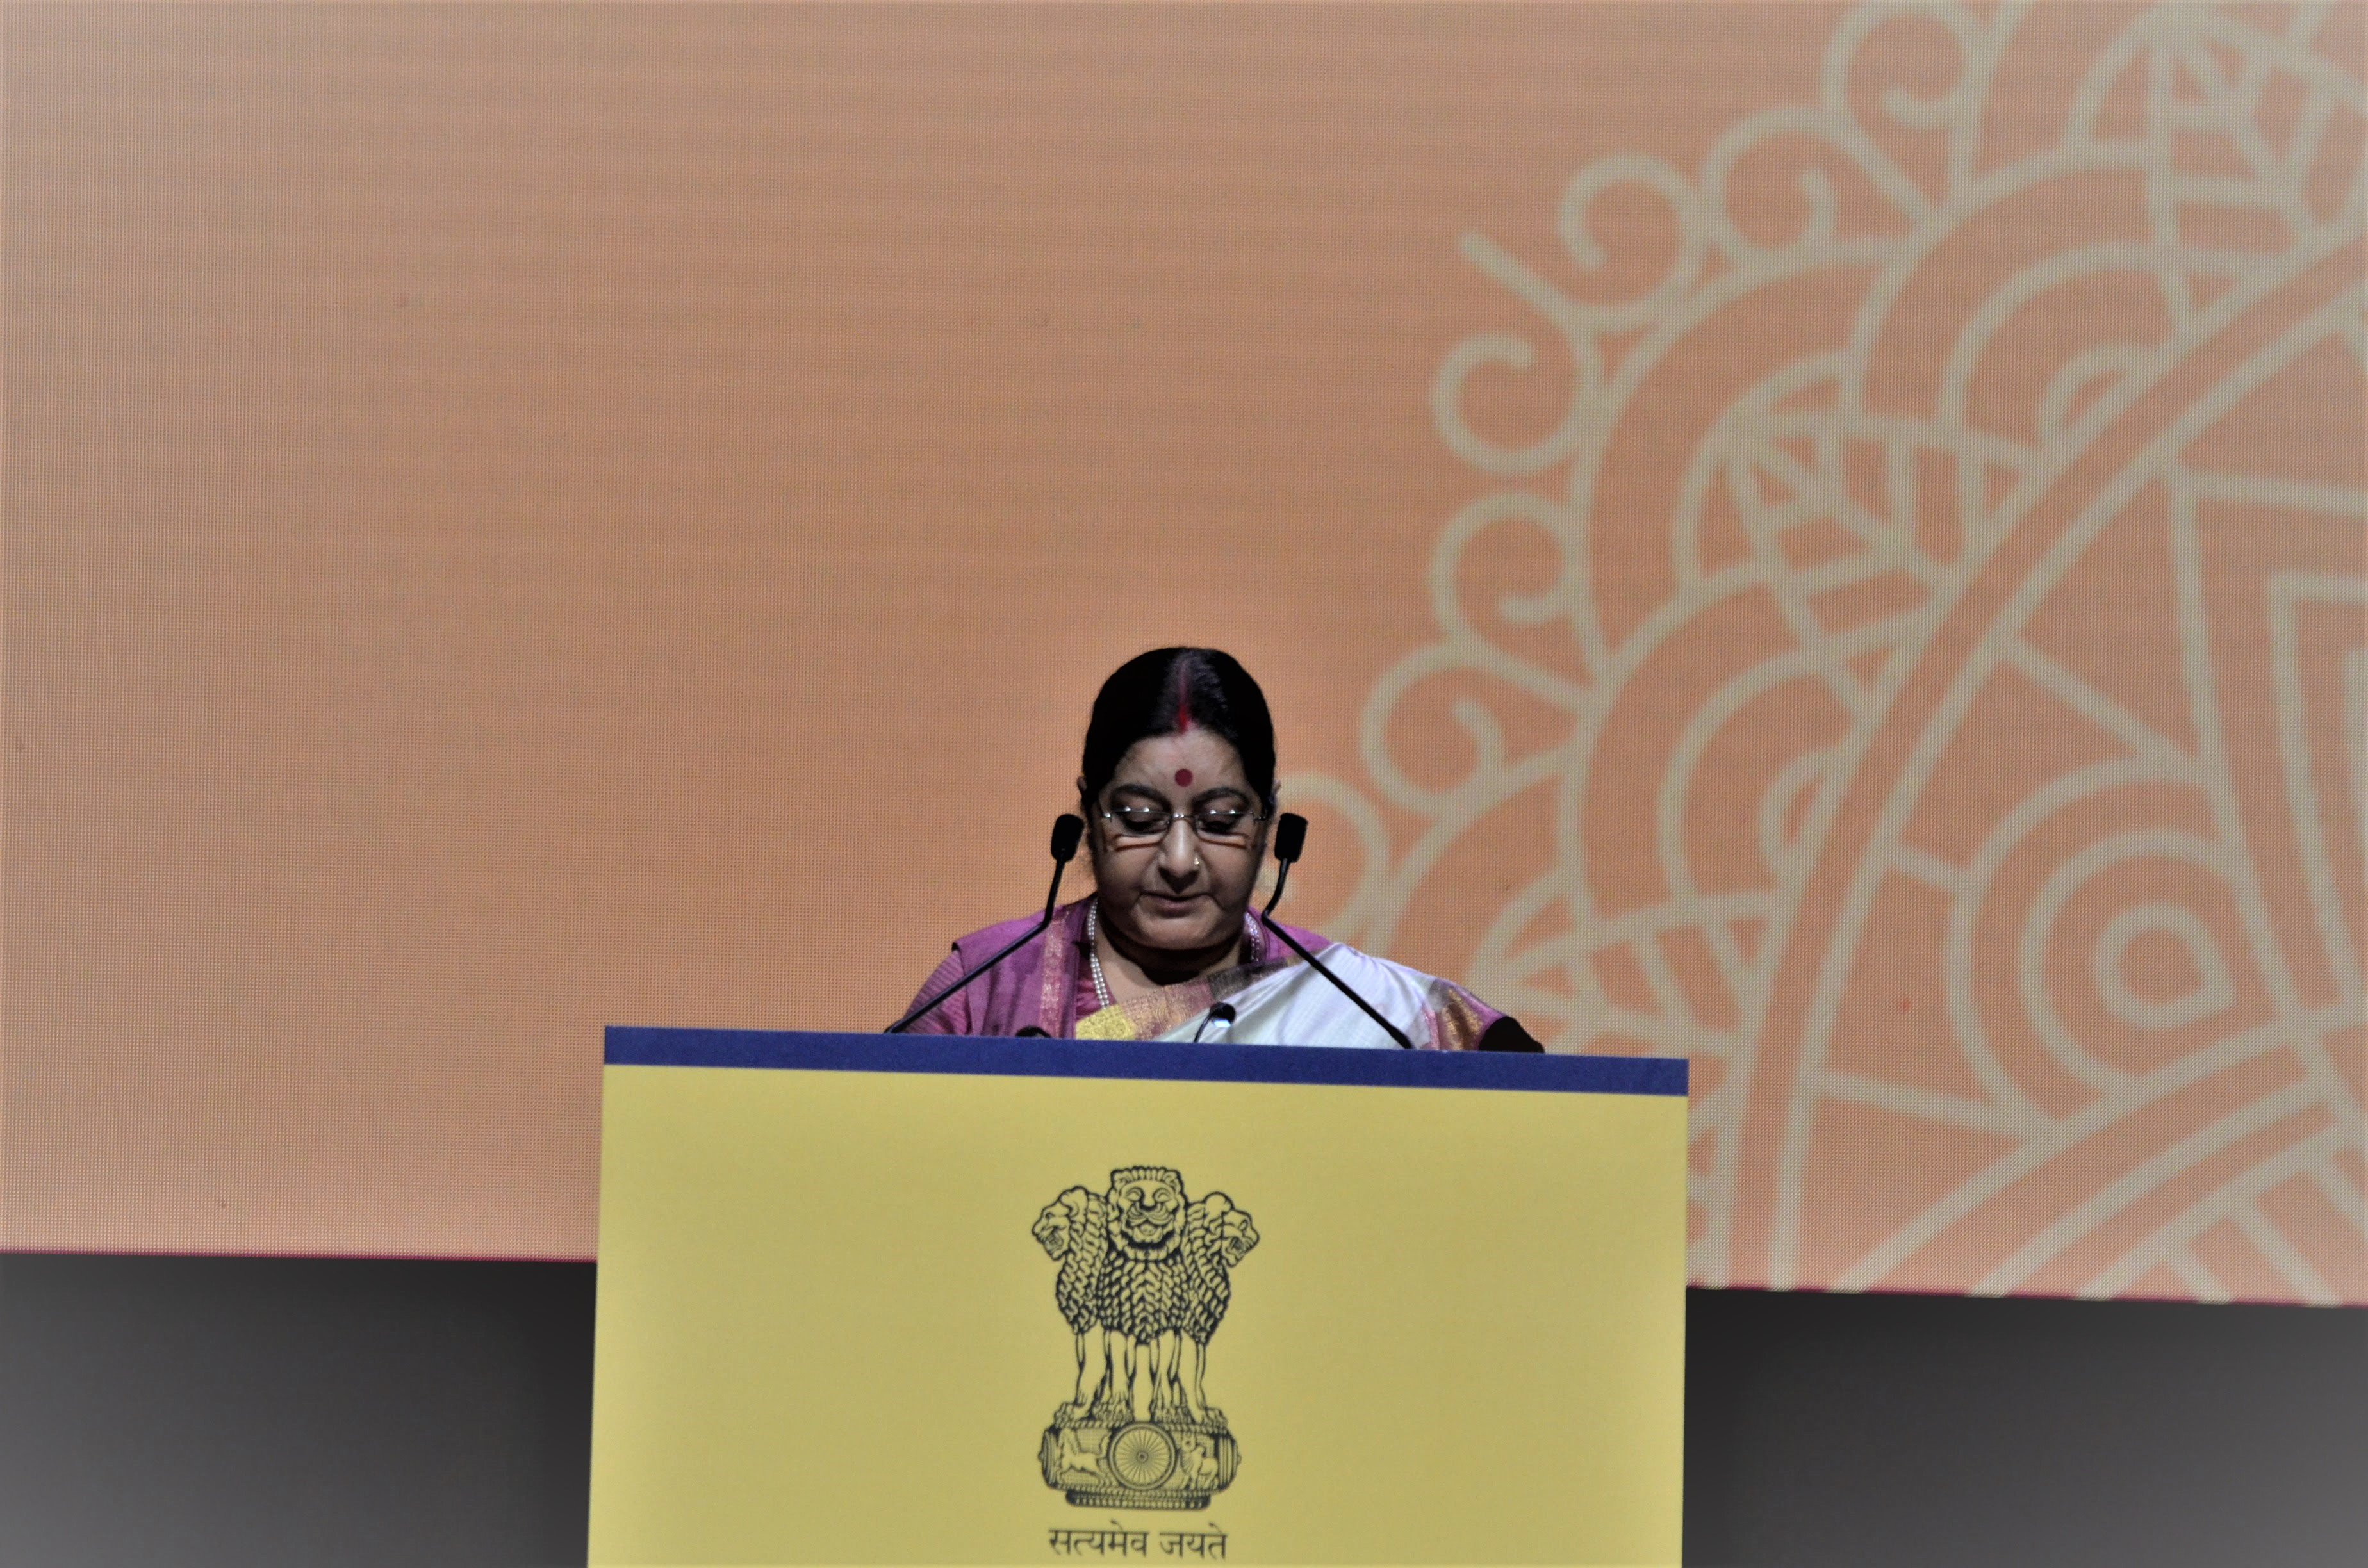 Indian Minister of External Affairs Sushma Swaraj while delivering her speech said the year 2018 was the 'Year of Milestones' for India and ASEAN marching on the path of growth and partnership.